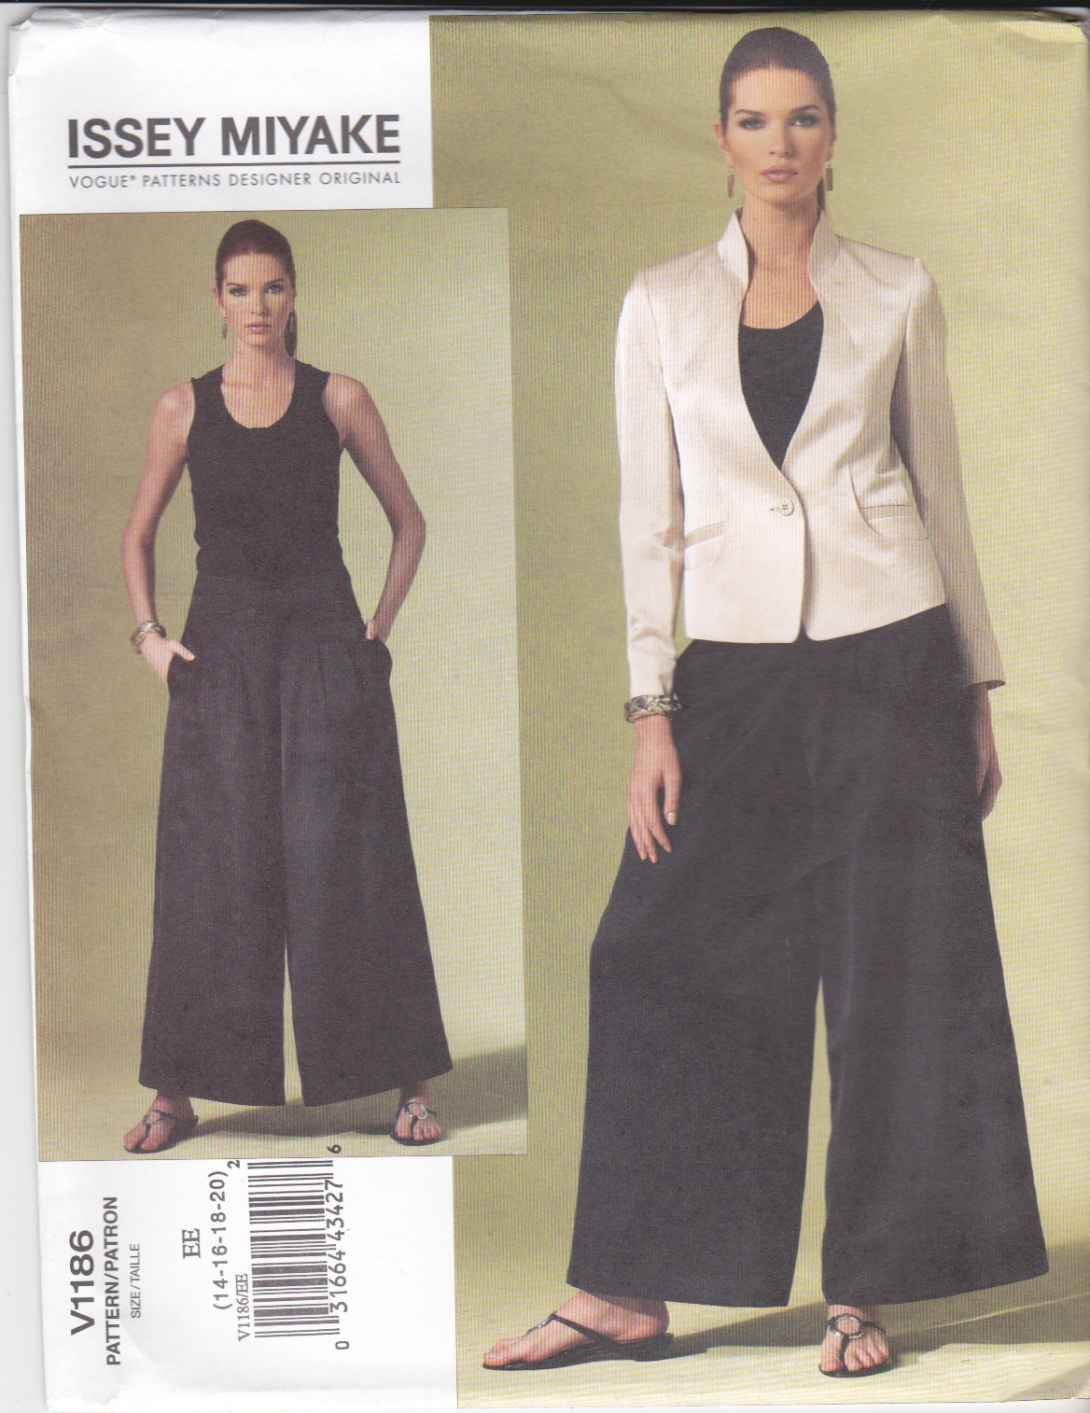 Vogue Sewing Pattern 1186 V1186 Misses Size 14-20 Issey Miyake Lined Jacket Flared Pants